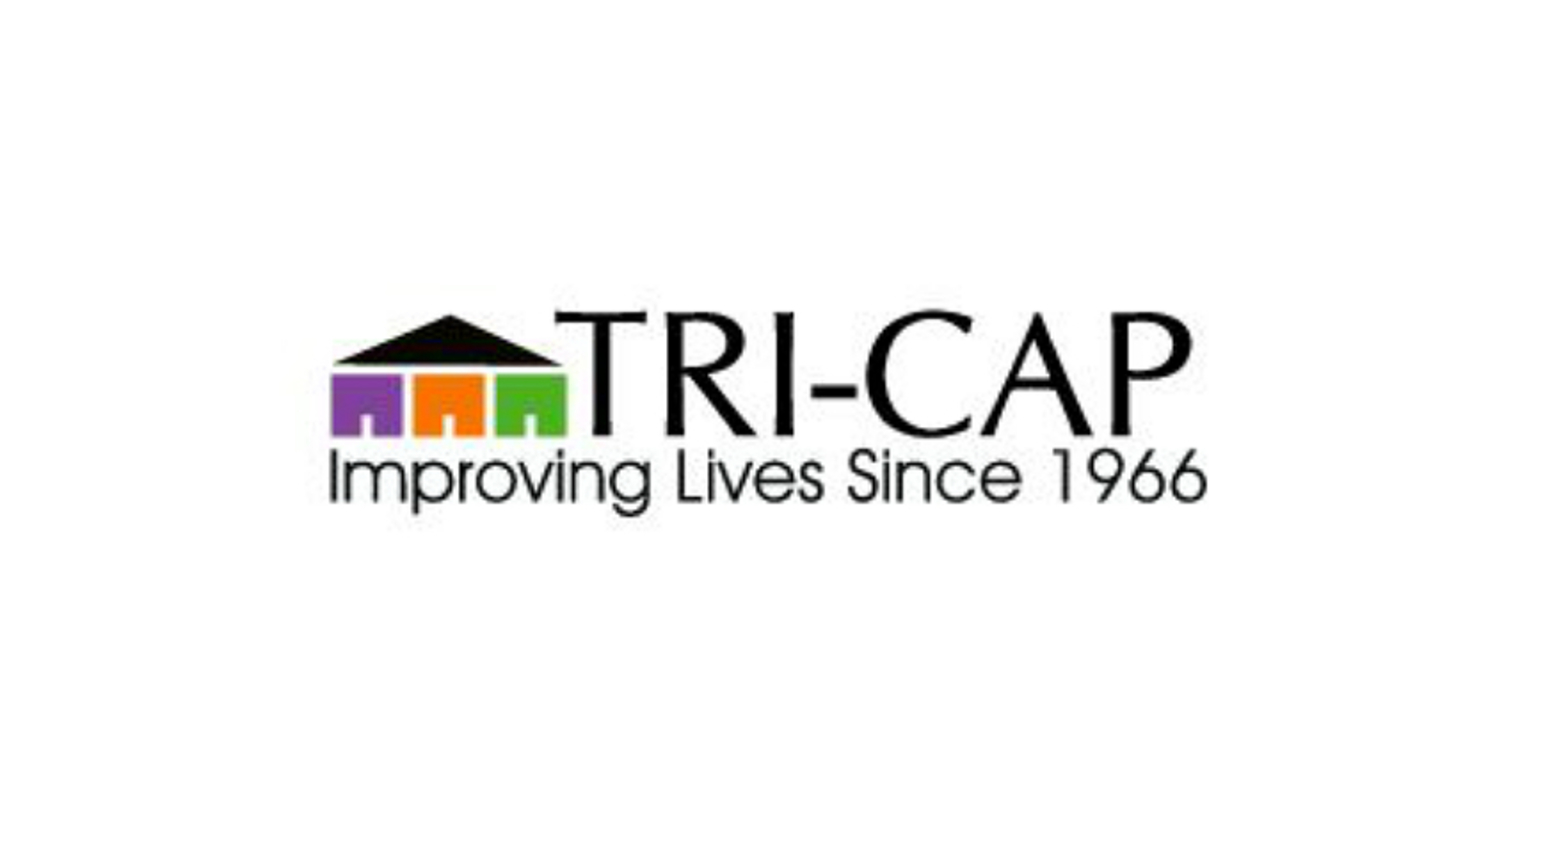 TRI-CAP Offers Free Enrollment Assistance for Health Insurance